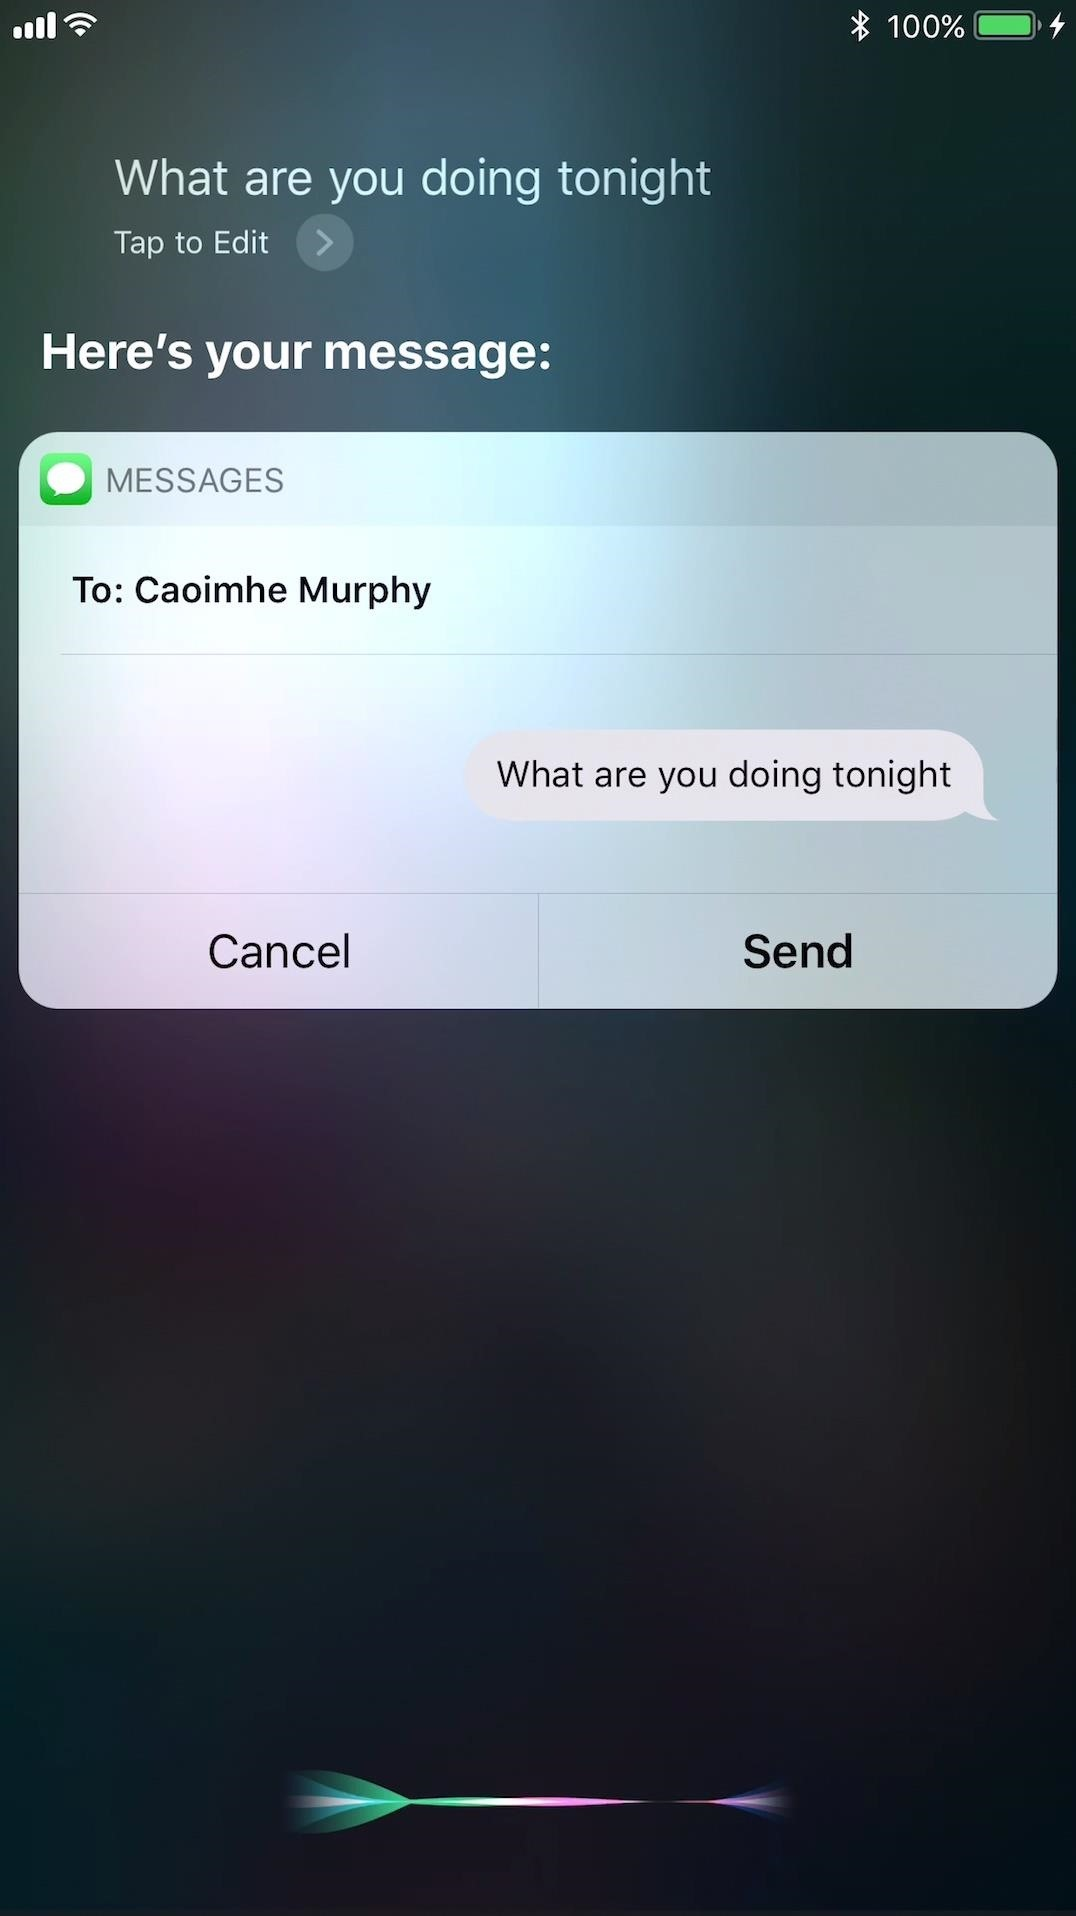 Siri 101: How to Make Siri Correctly Recognize & Pronounce Contact Names on Your iPhone